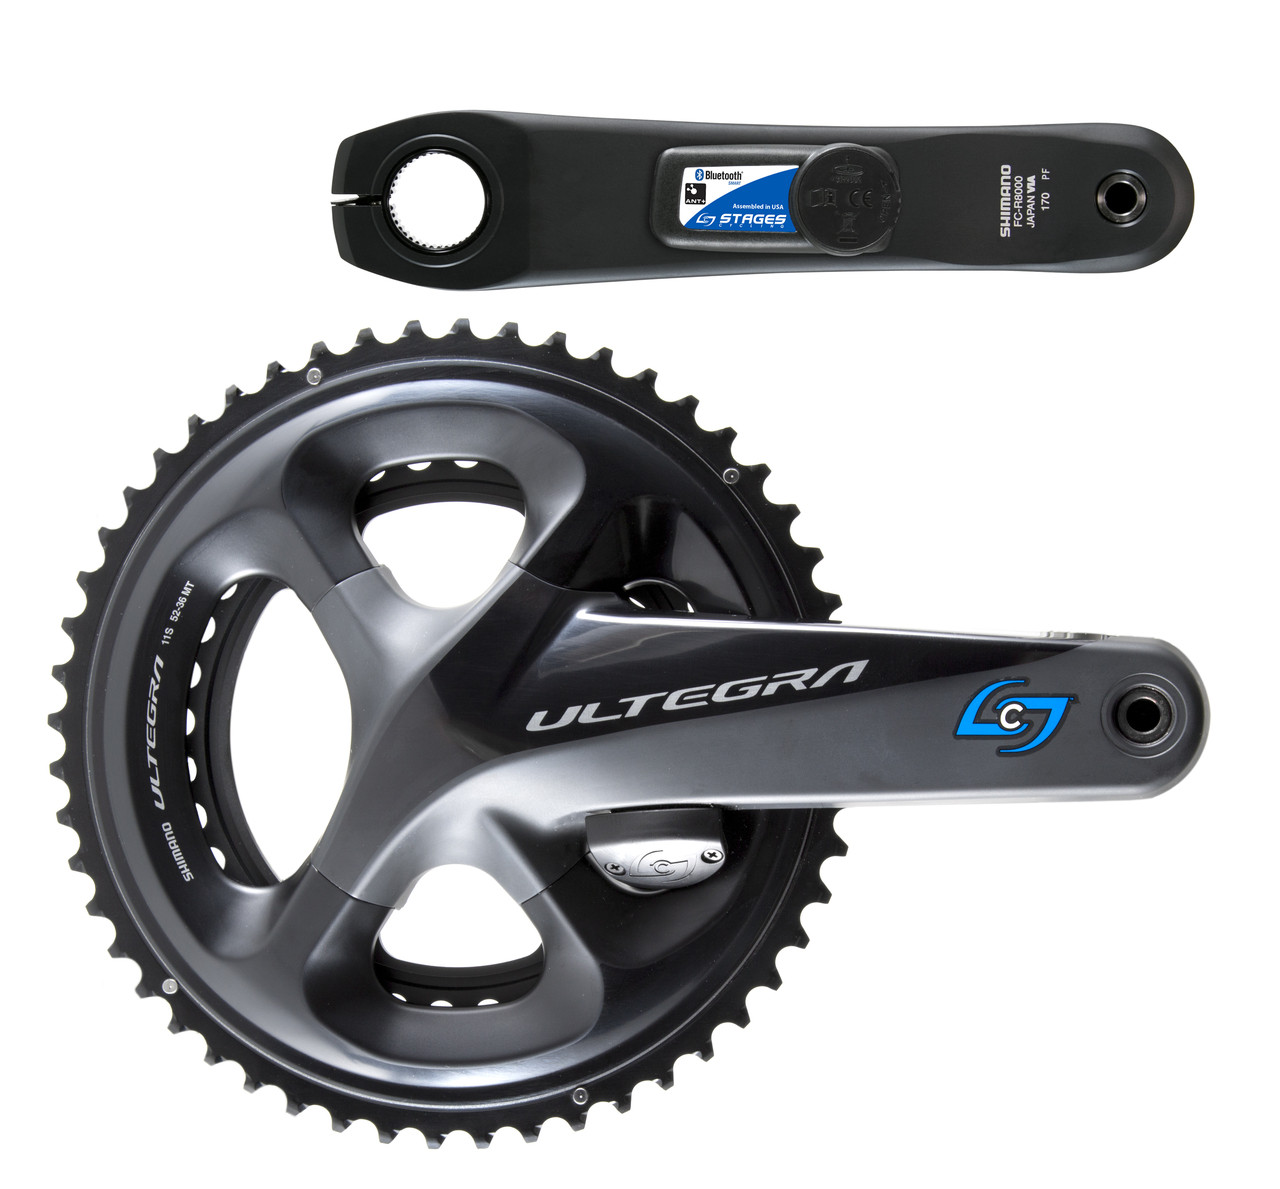 Stages Ultegra 6800 Bi-Lateral Dual Sided Crankset